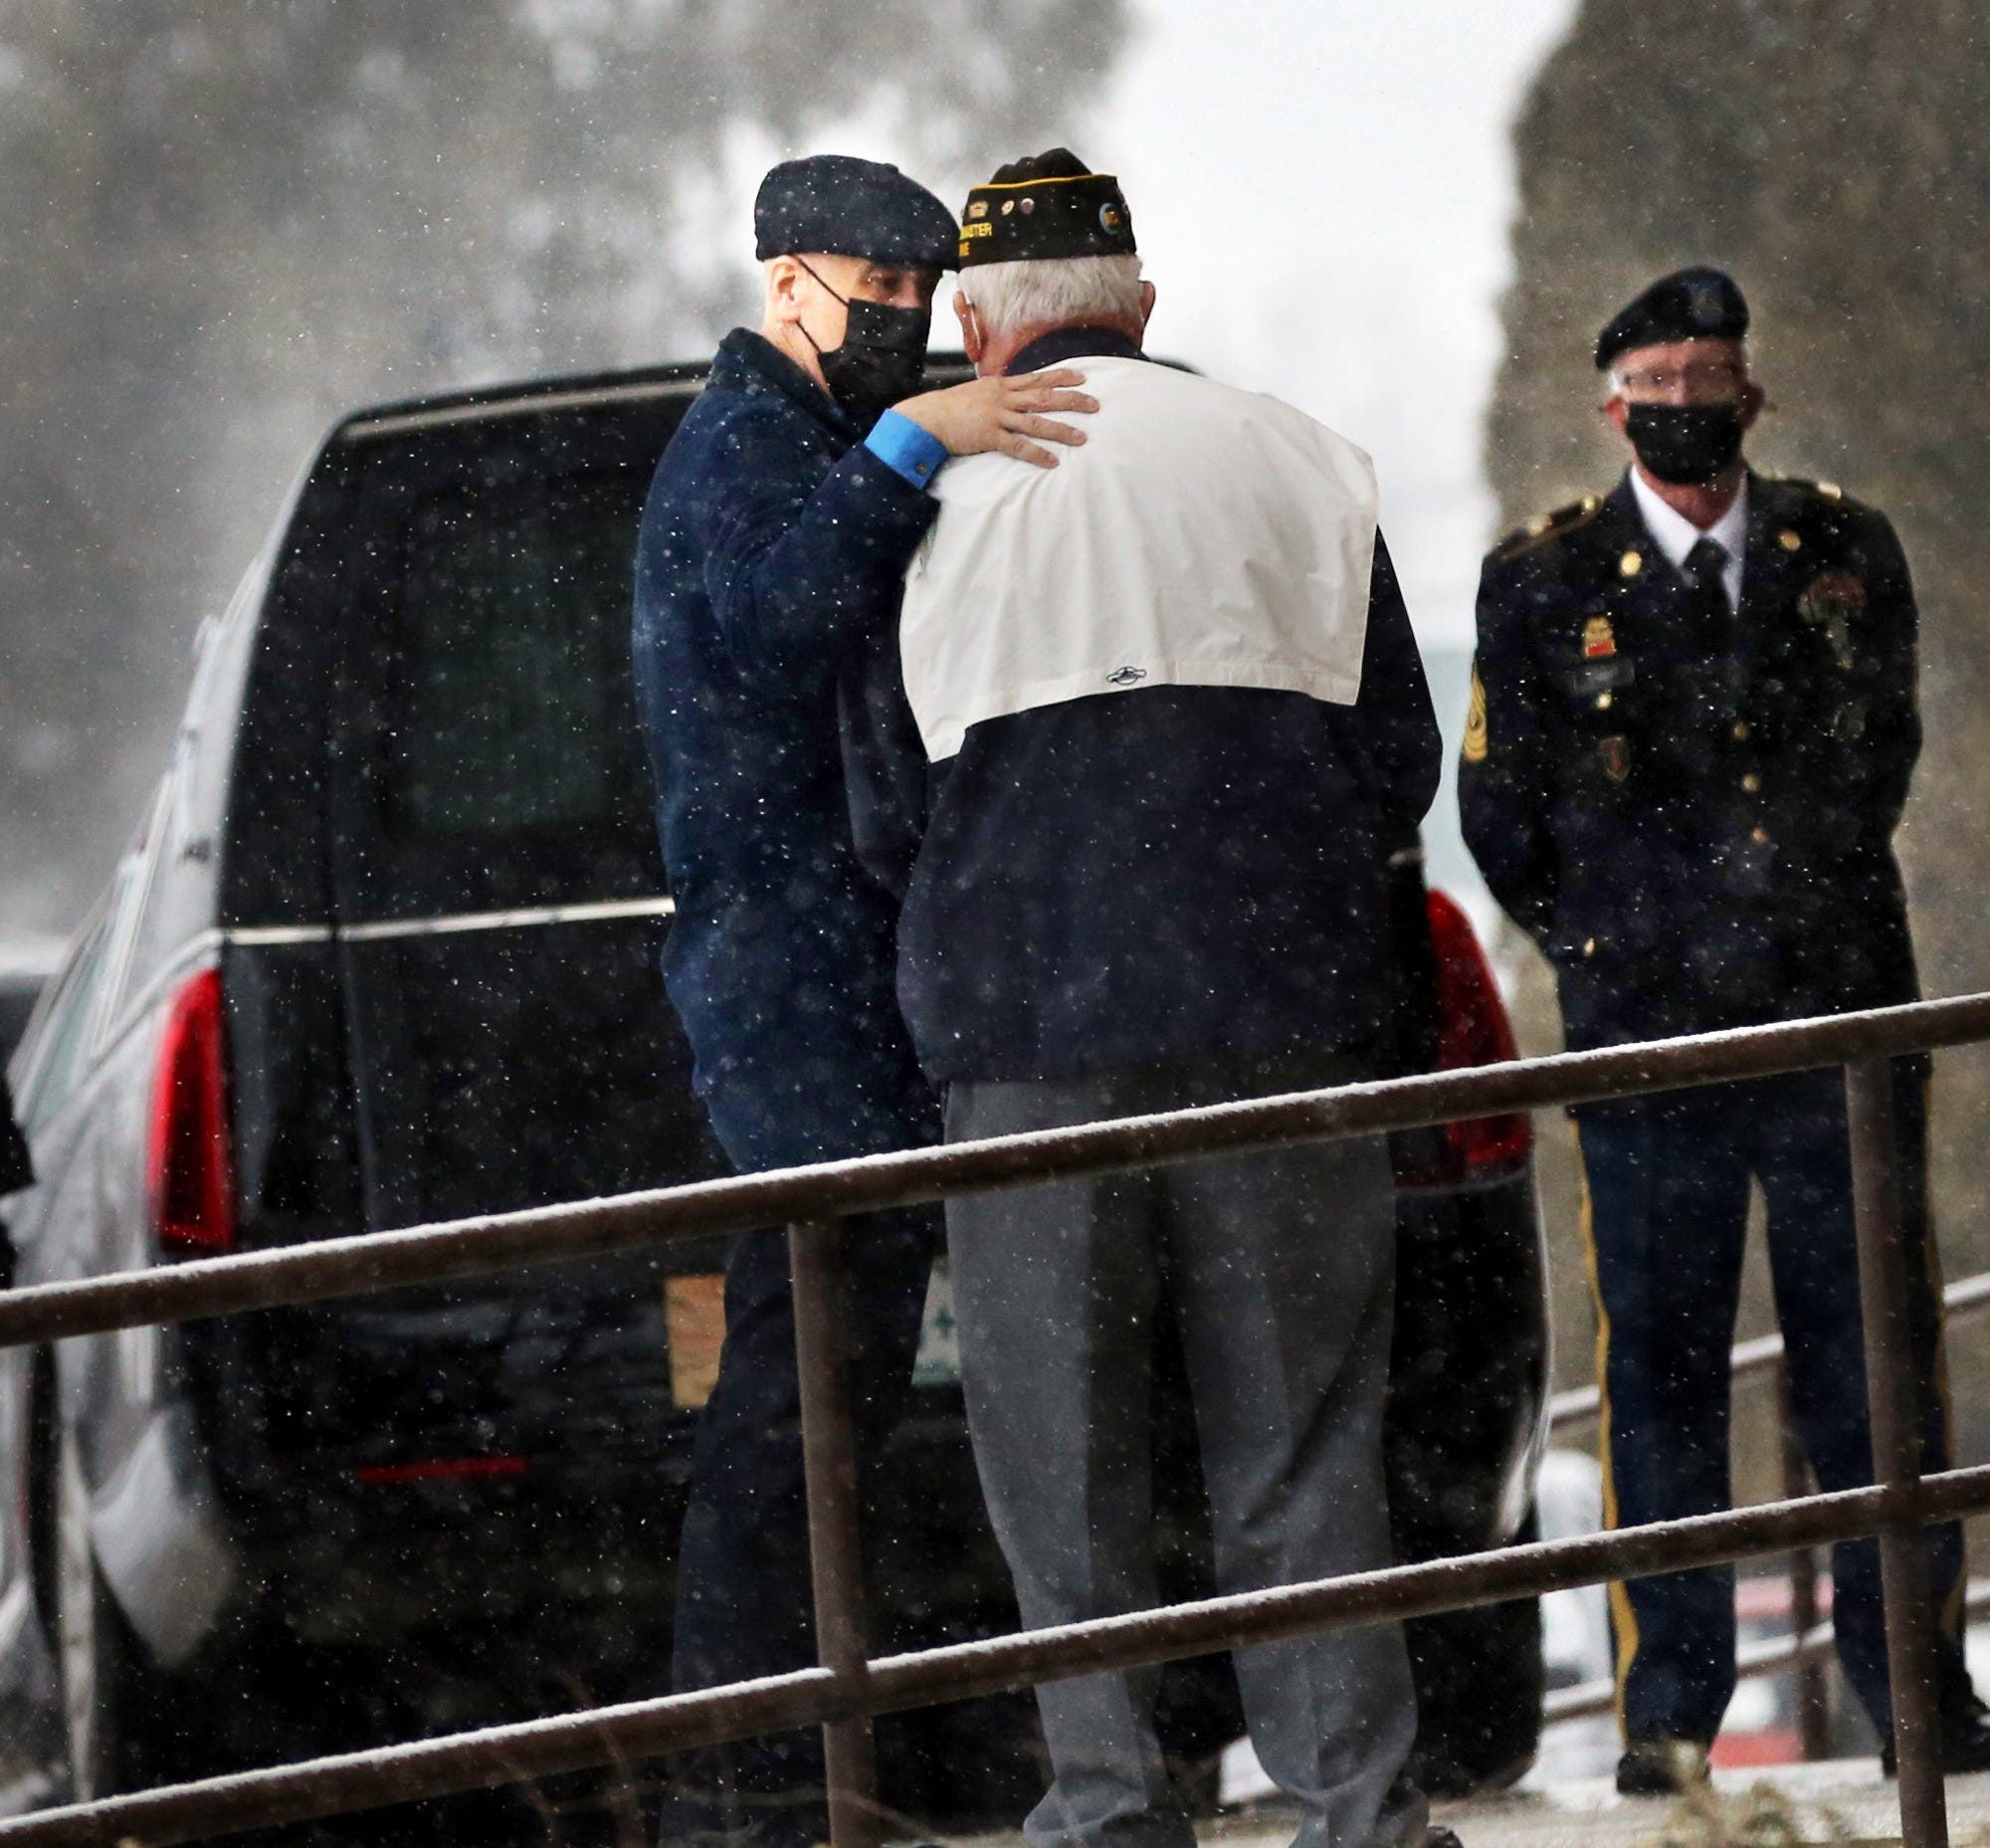 As snow falls gently, funeral home director Jeff Pelkey comforts a friend of the deceased during a funeral Mass. The gentleman, who was cremated, was a Korean War veteran who was heavily involved with the VFW.